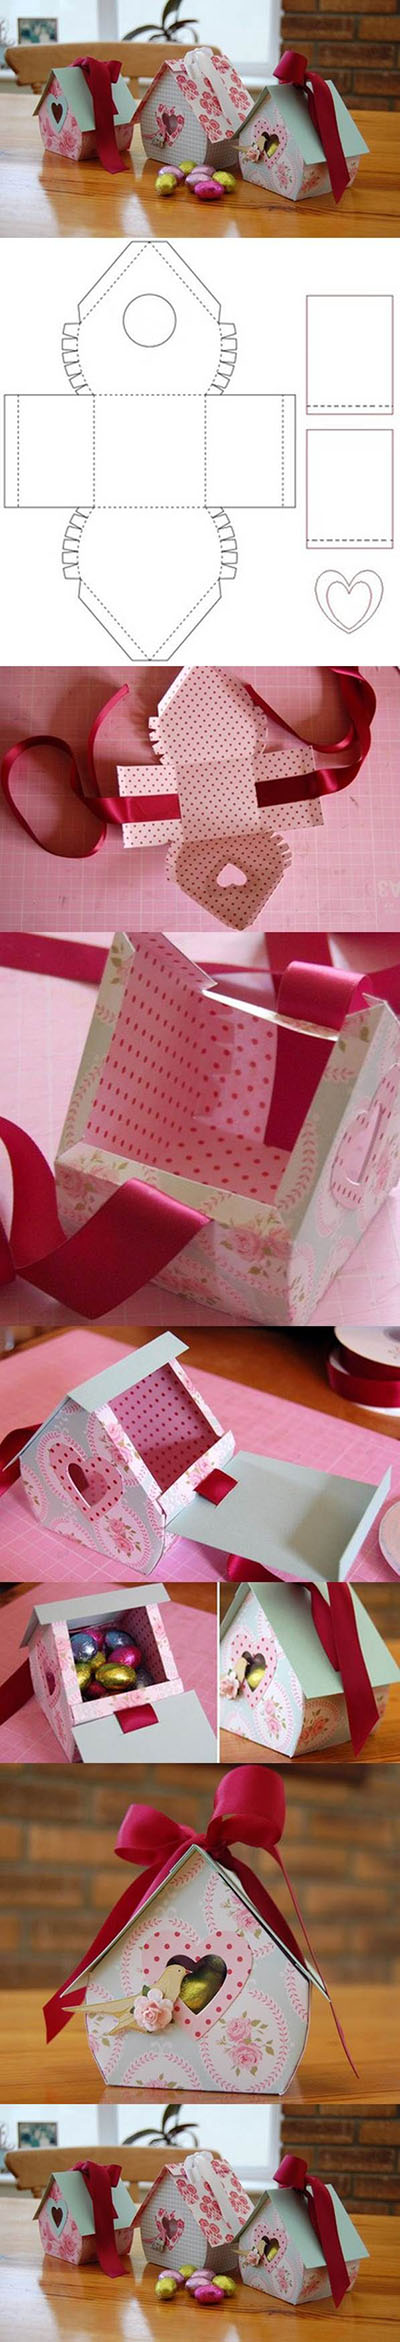 17  DIY Bird Nest Gift Boxca8f82